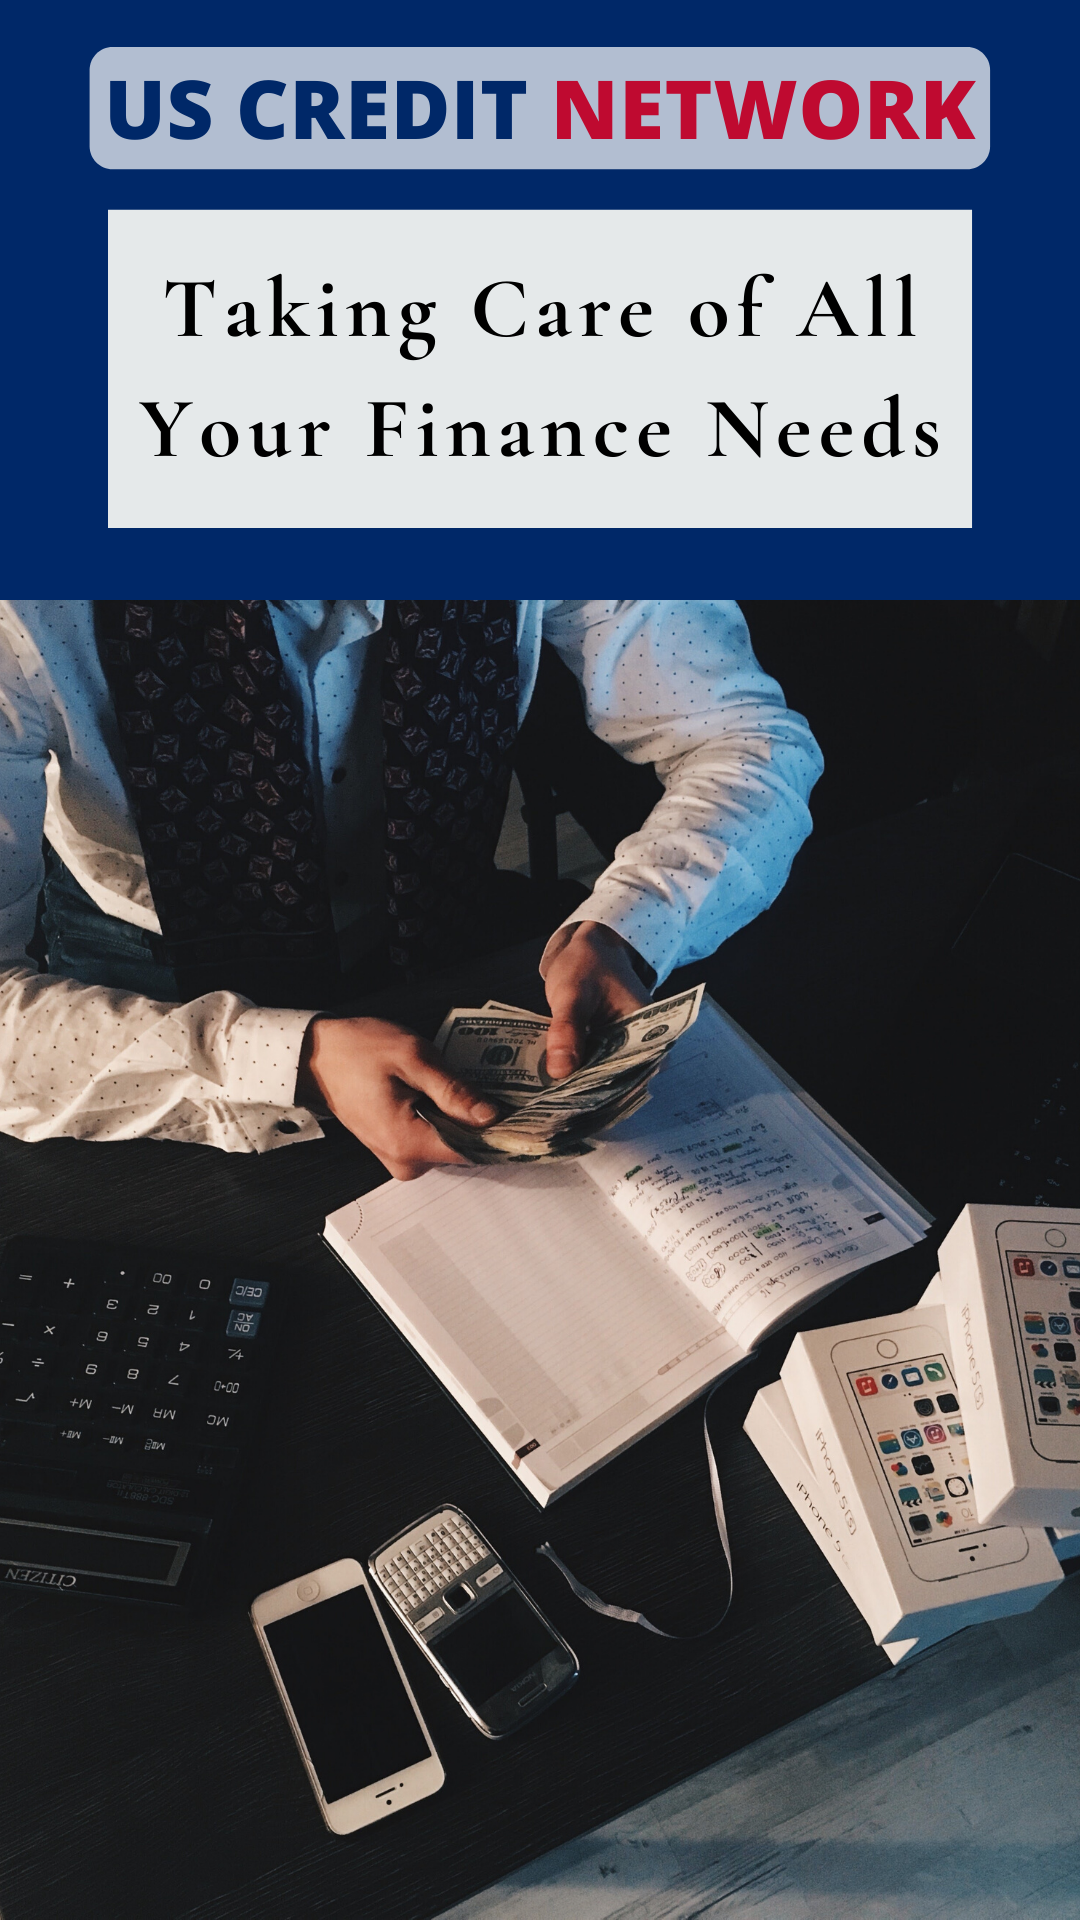 Are you looking for Financial help? Do you want to learn